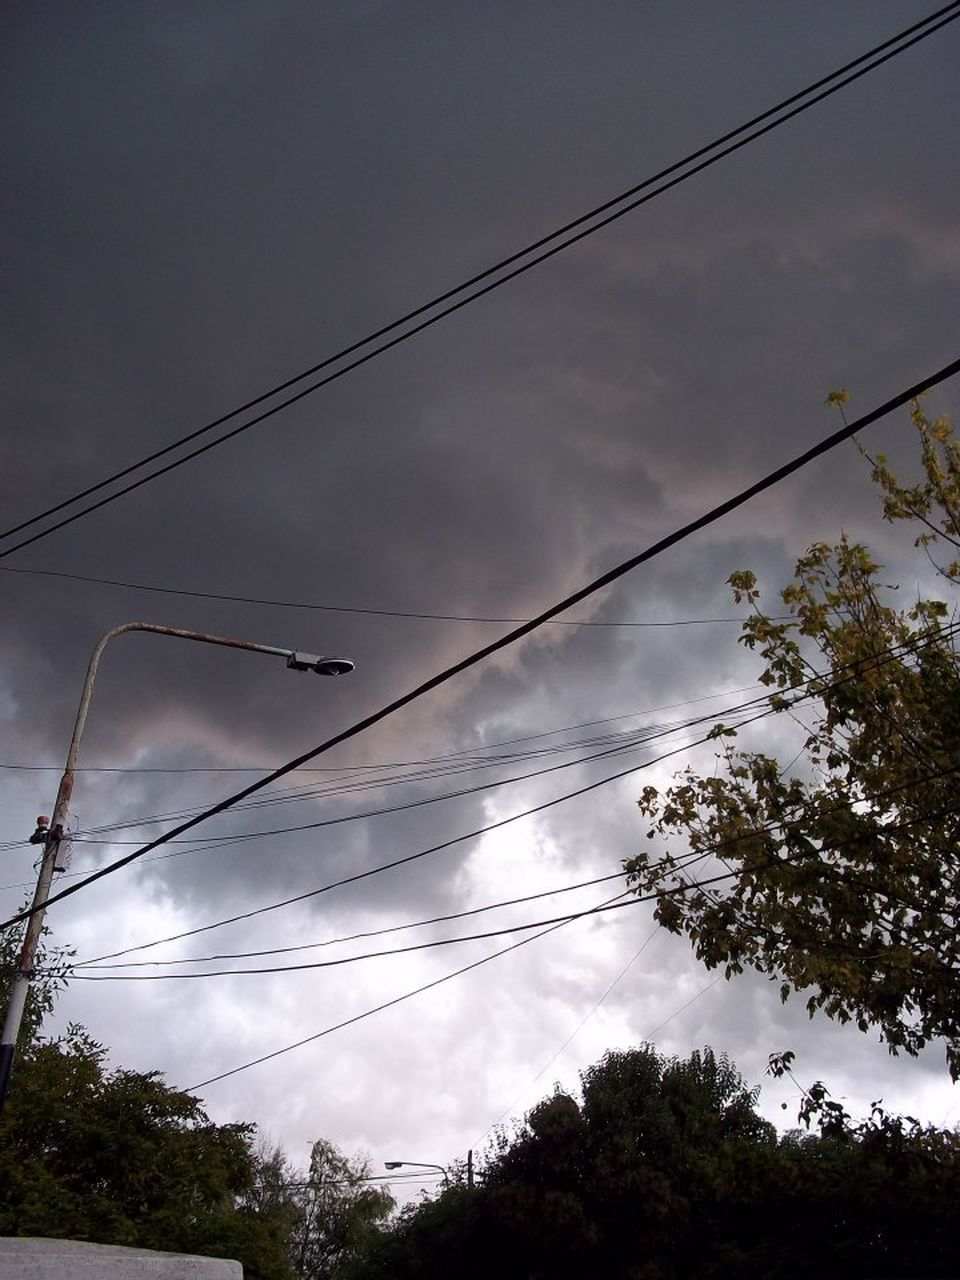 LOW ANGLE VIEW OF POWER LINE AGAINST CLOUDY SKY